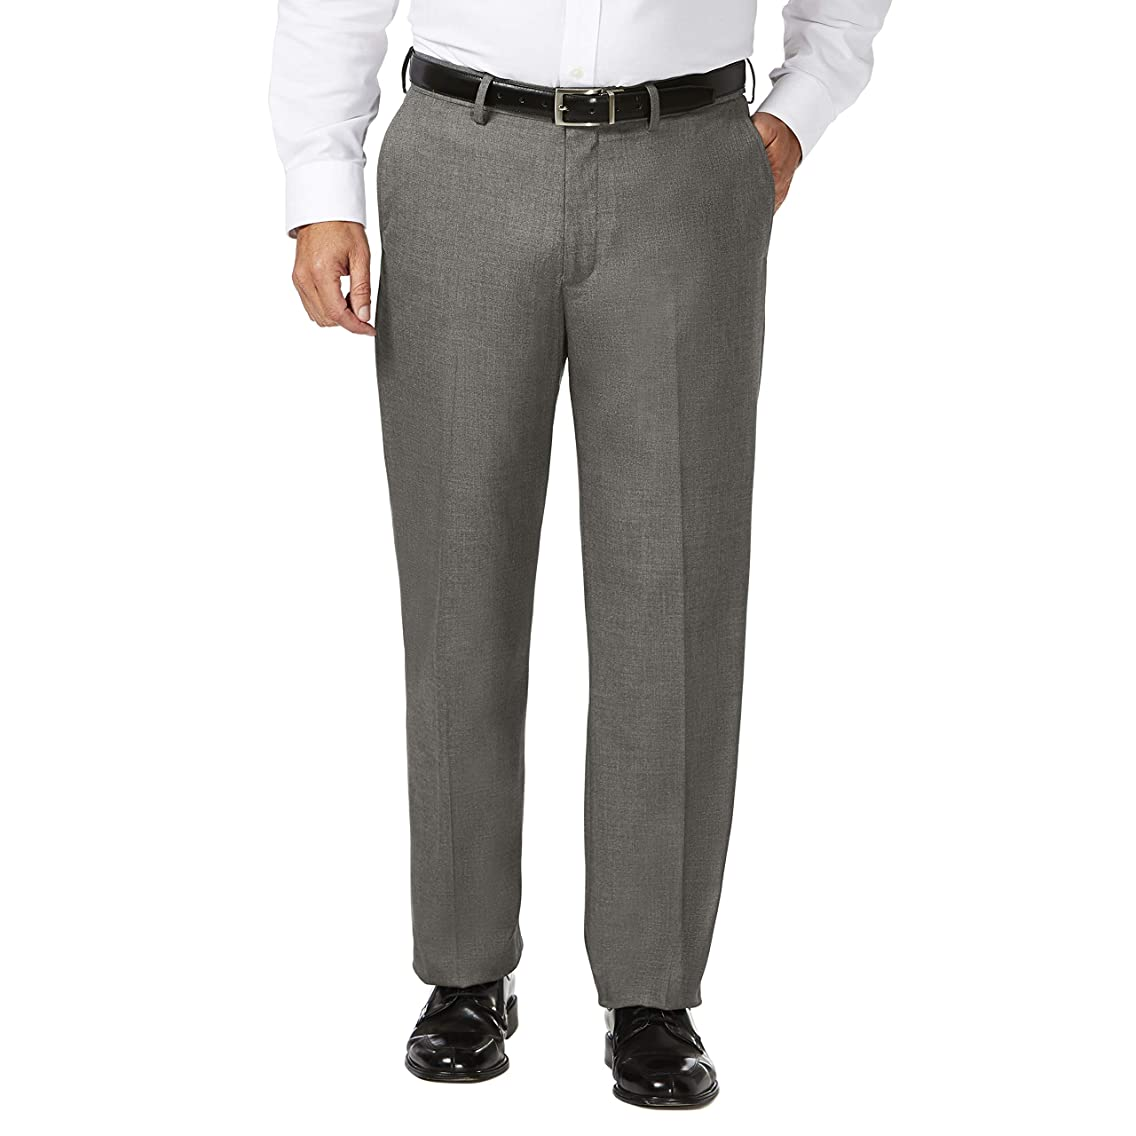 J.M. Haggar Men's Big and Tall B&t Expandable Waist Classic Fit Flat Front Pant